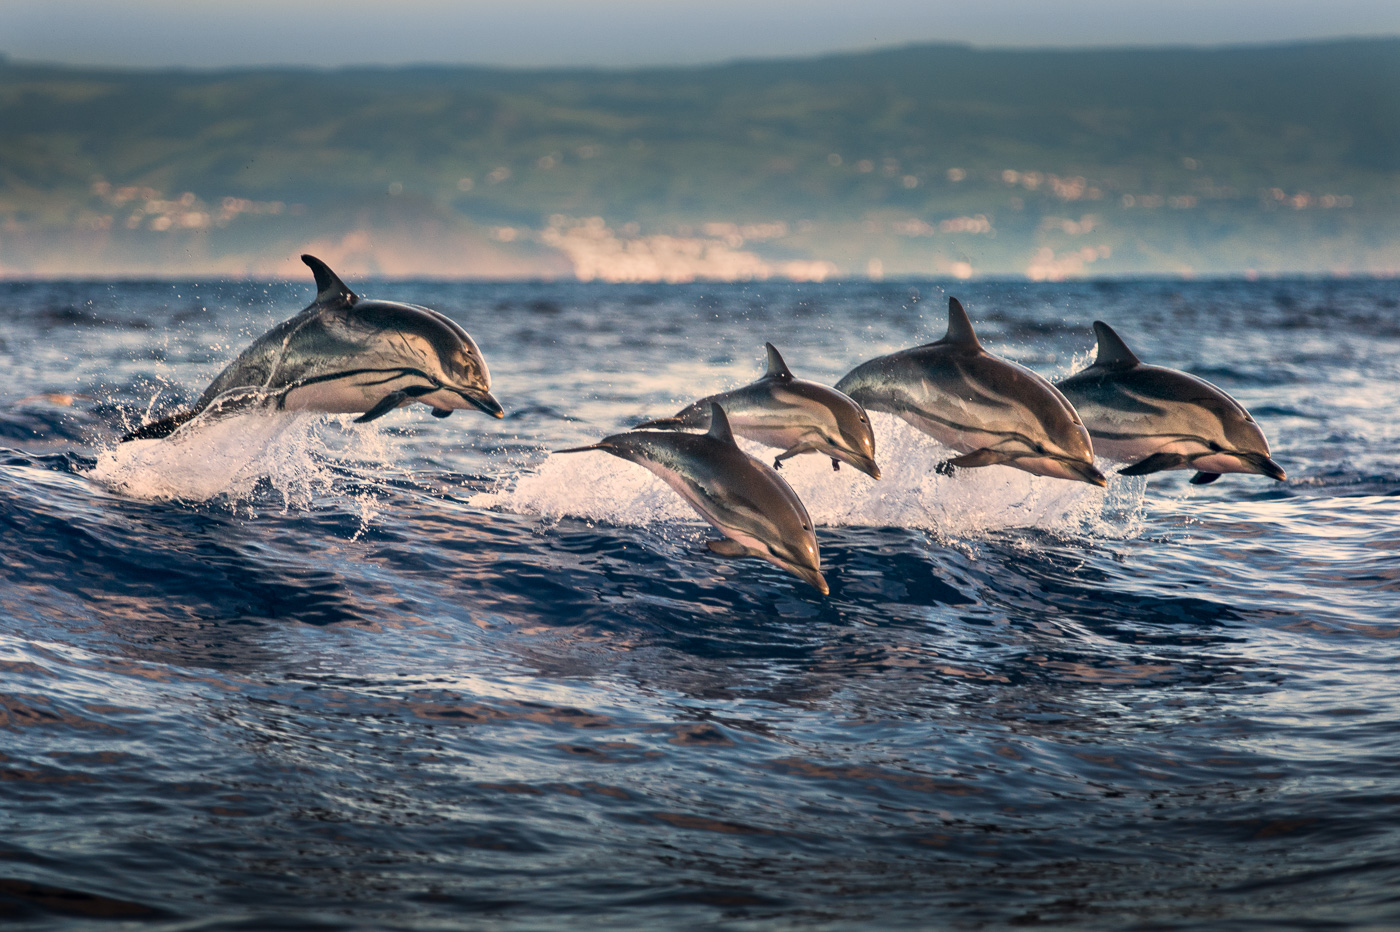 striped dolphins jumping synchronize azores